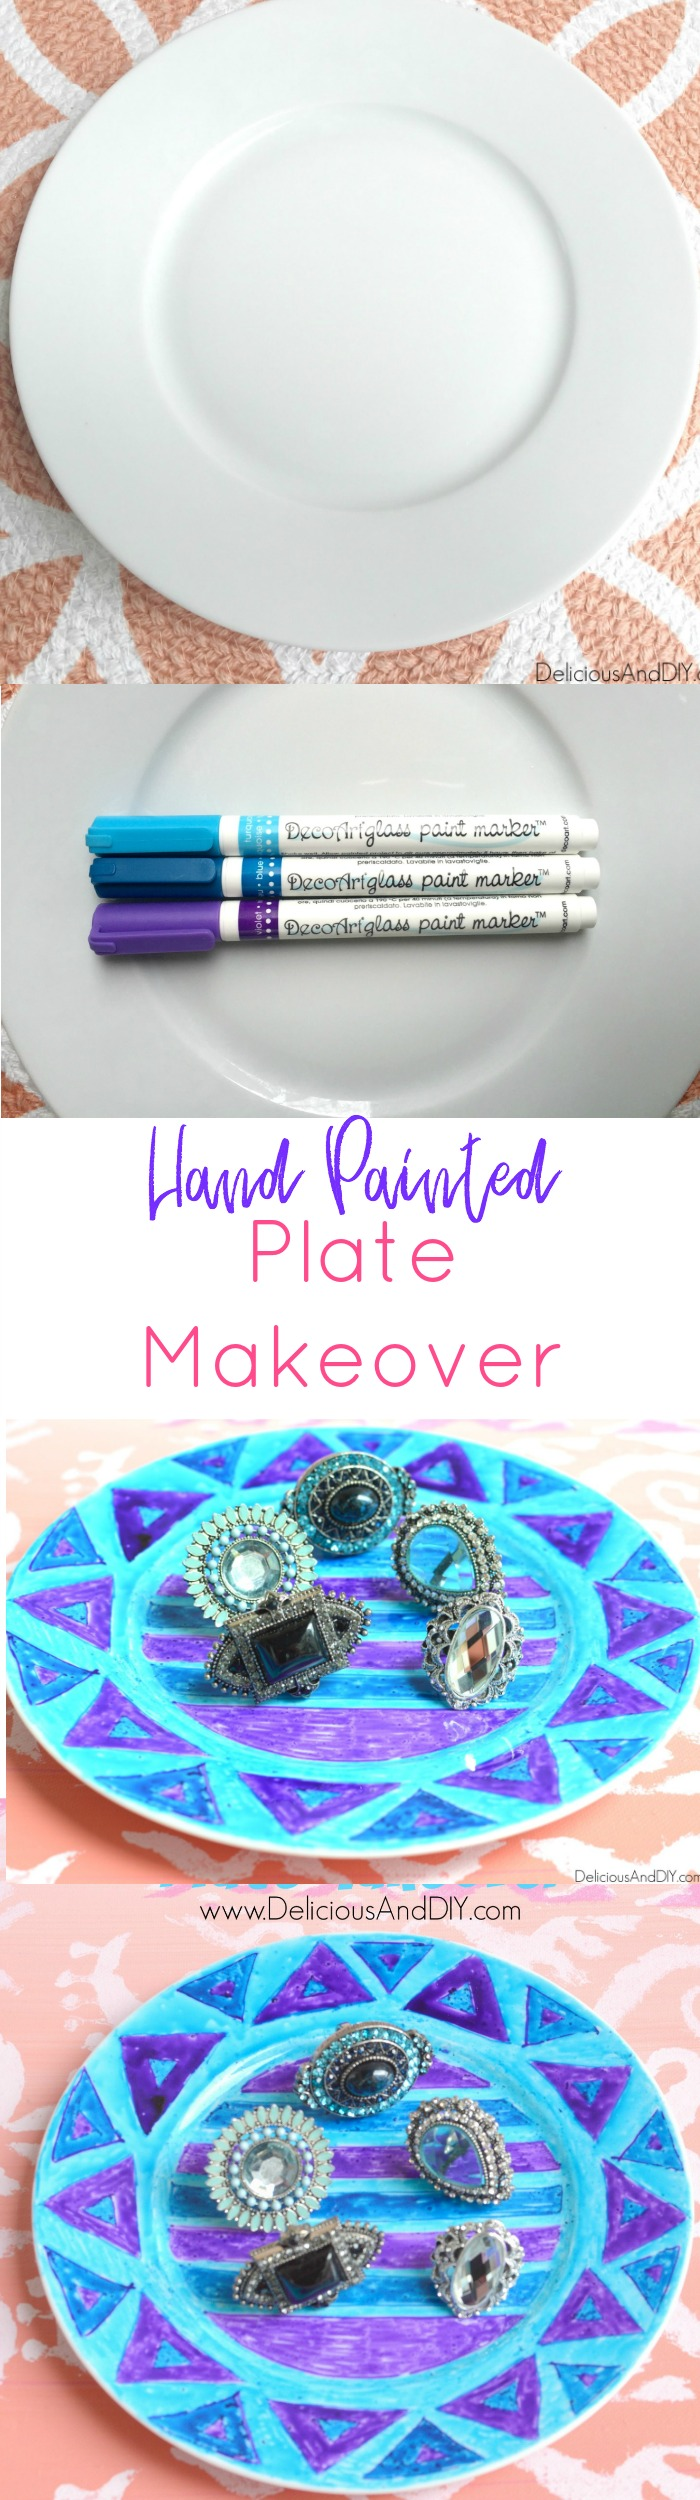 Create a gorgeous fun pattern using just Glass Paint Marker and easily customize plain white plates| DIY Crafts using Sharpie| Handpainted Plates| Hand painted Mugs| Glass Paint Projects| Ikea Plates Painted